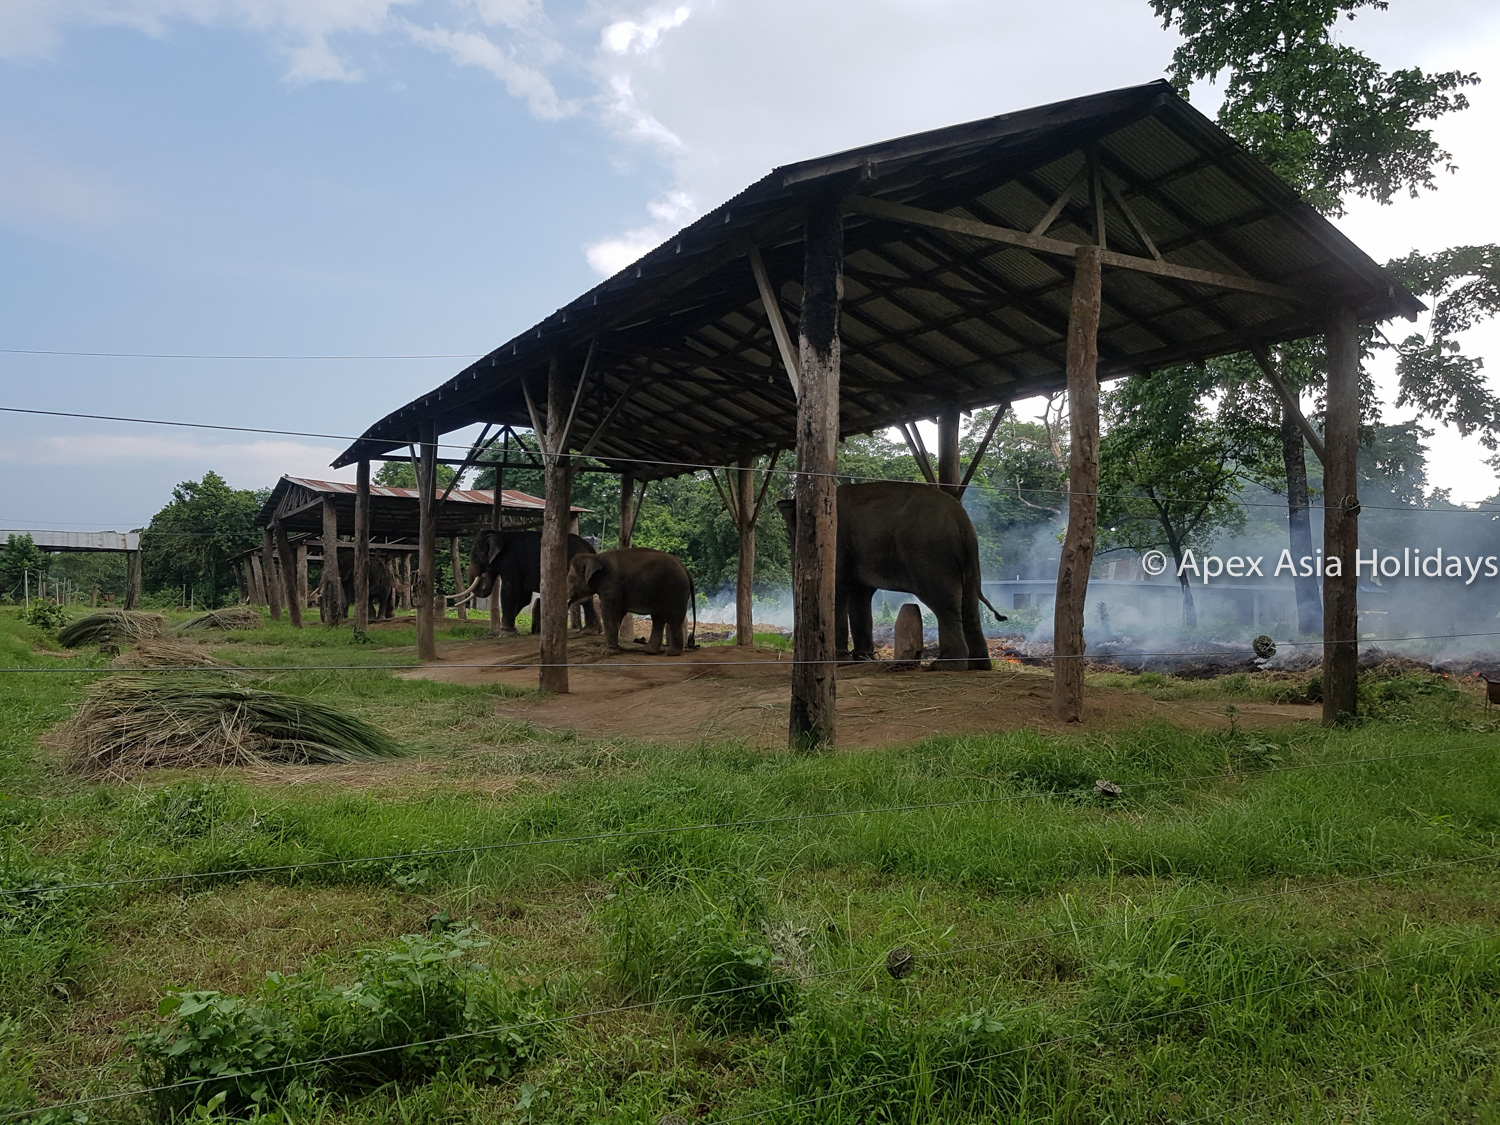 Elephants In The Shed At Chitwan Nepal